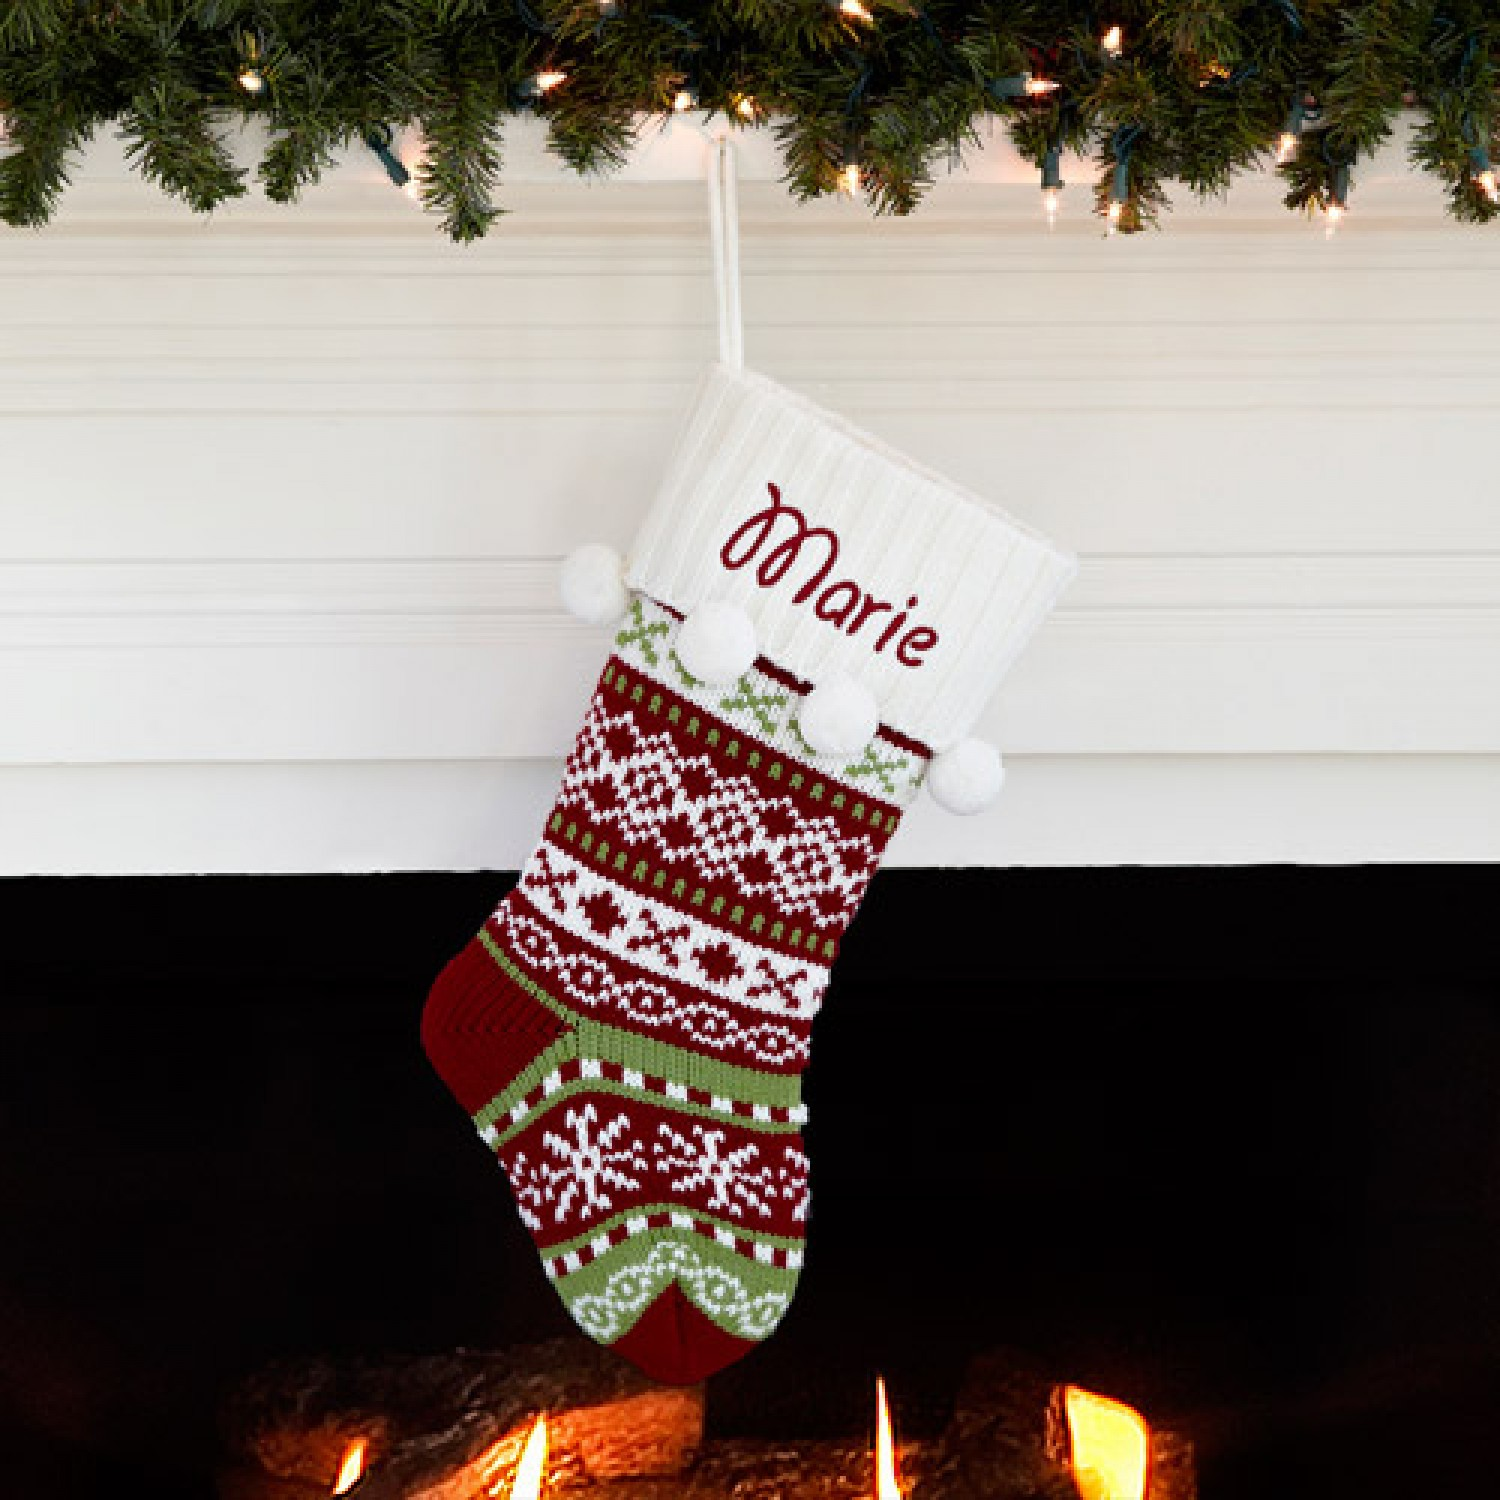 Cozy knit christmas stockings with multicolorful christmas stocking and fireplace at chistmas day interior design